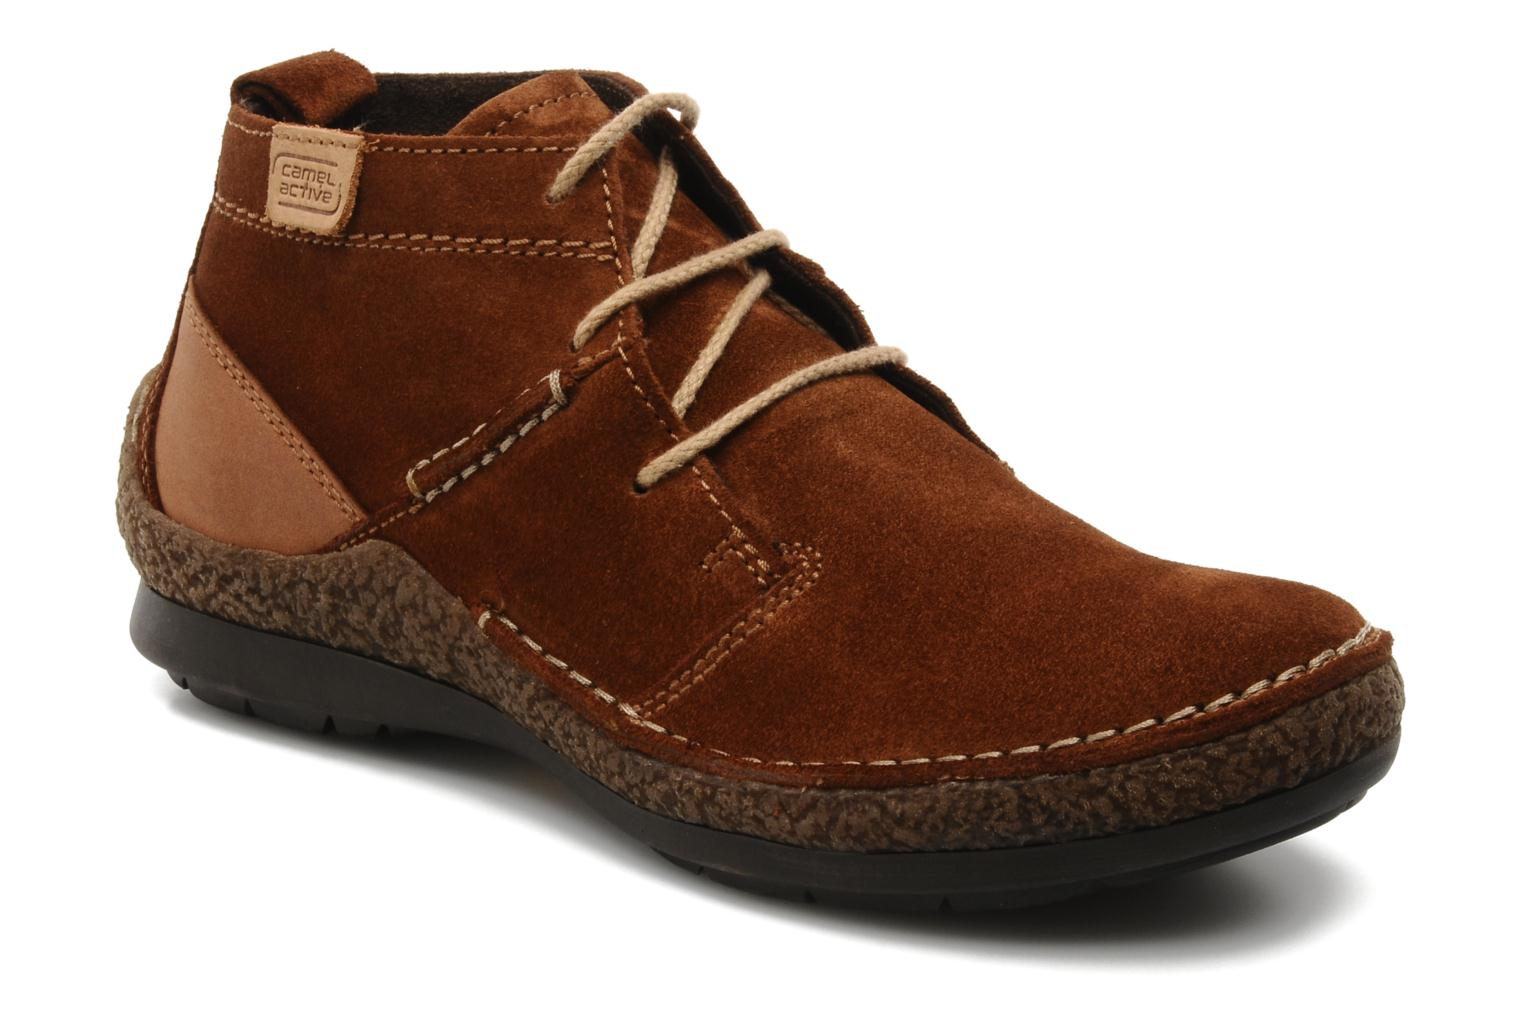 Awesome Brown Boots N180001906 3539Camel Active Women ShoesCamel Active